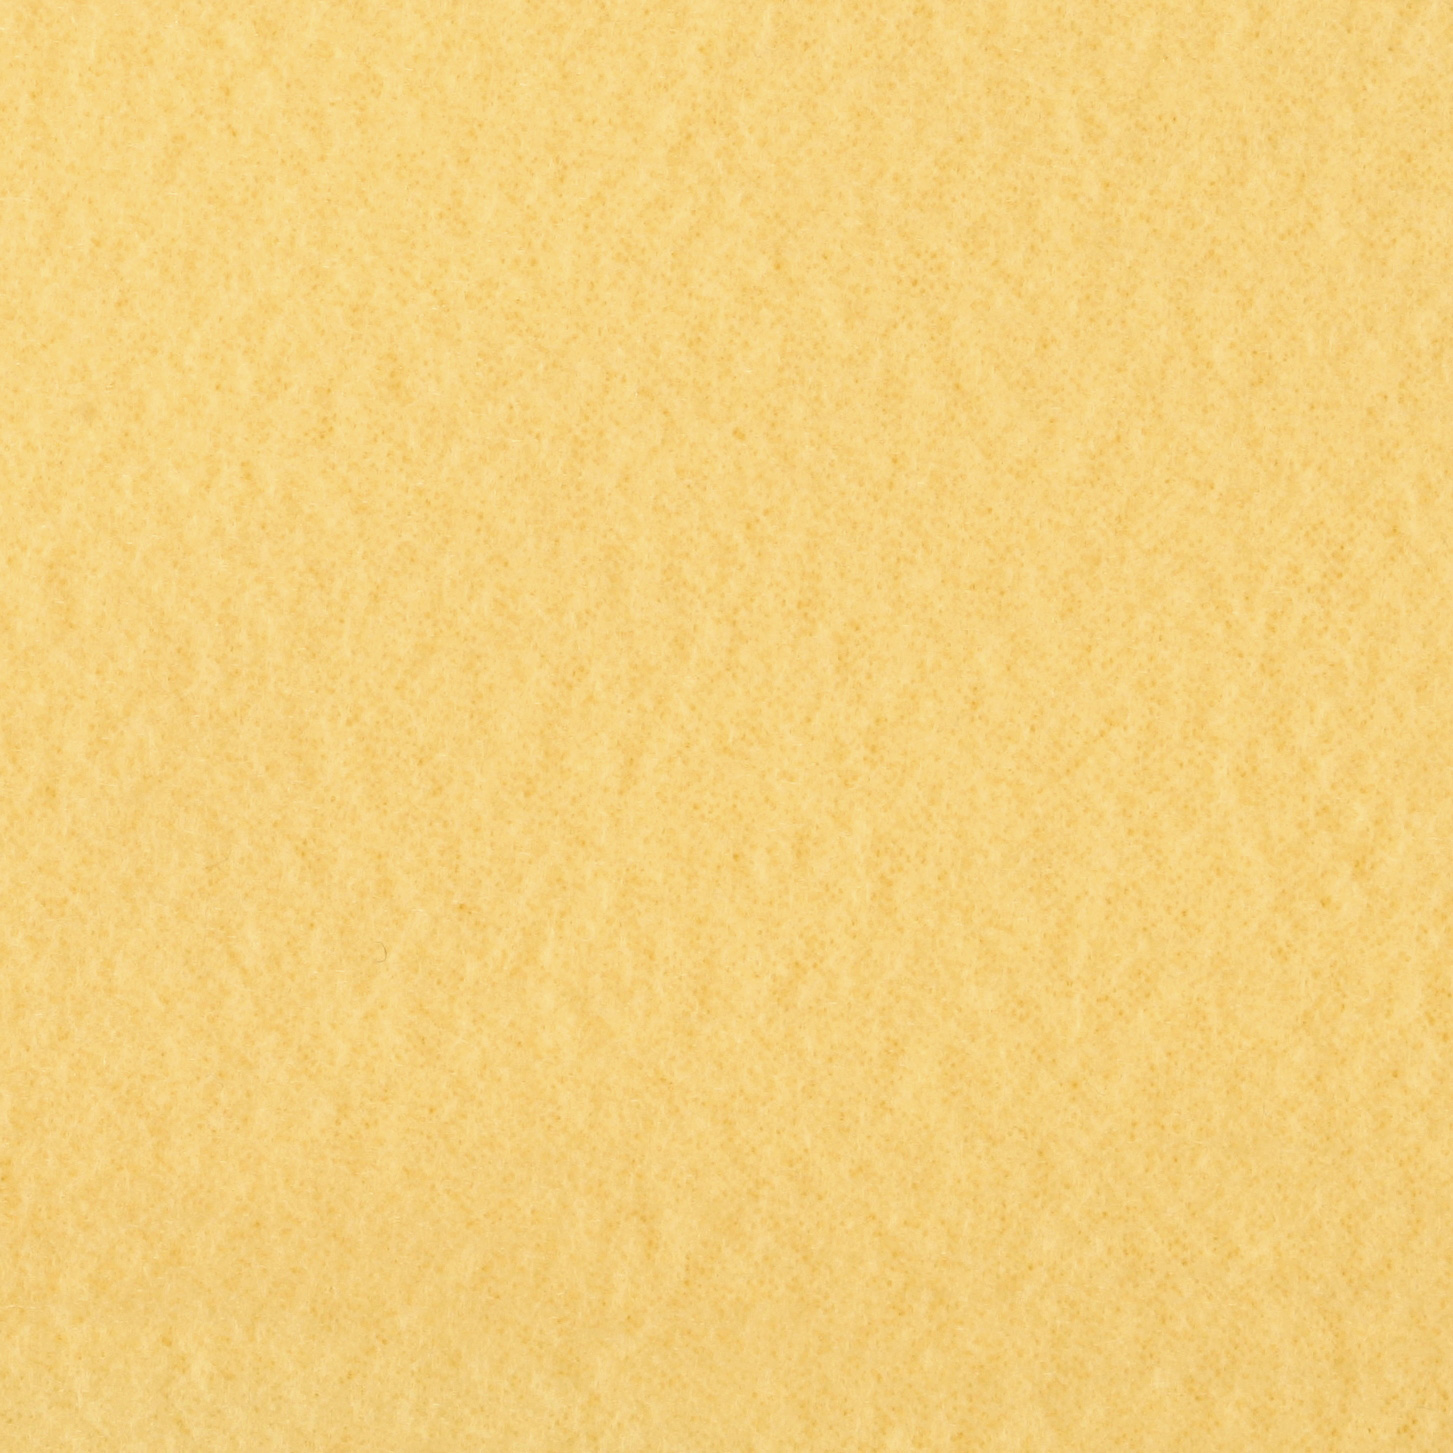 Wintry Fleece Banana Yellow